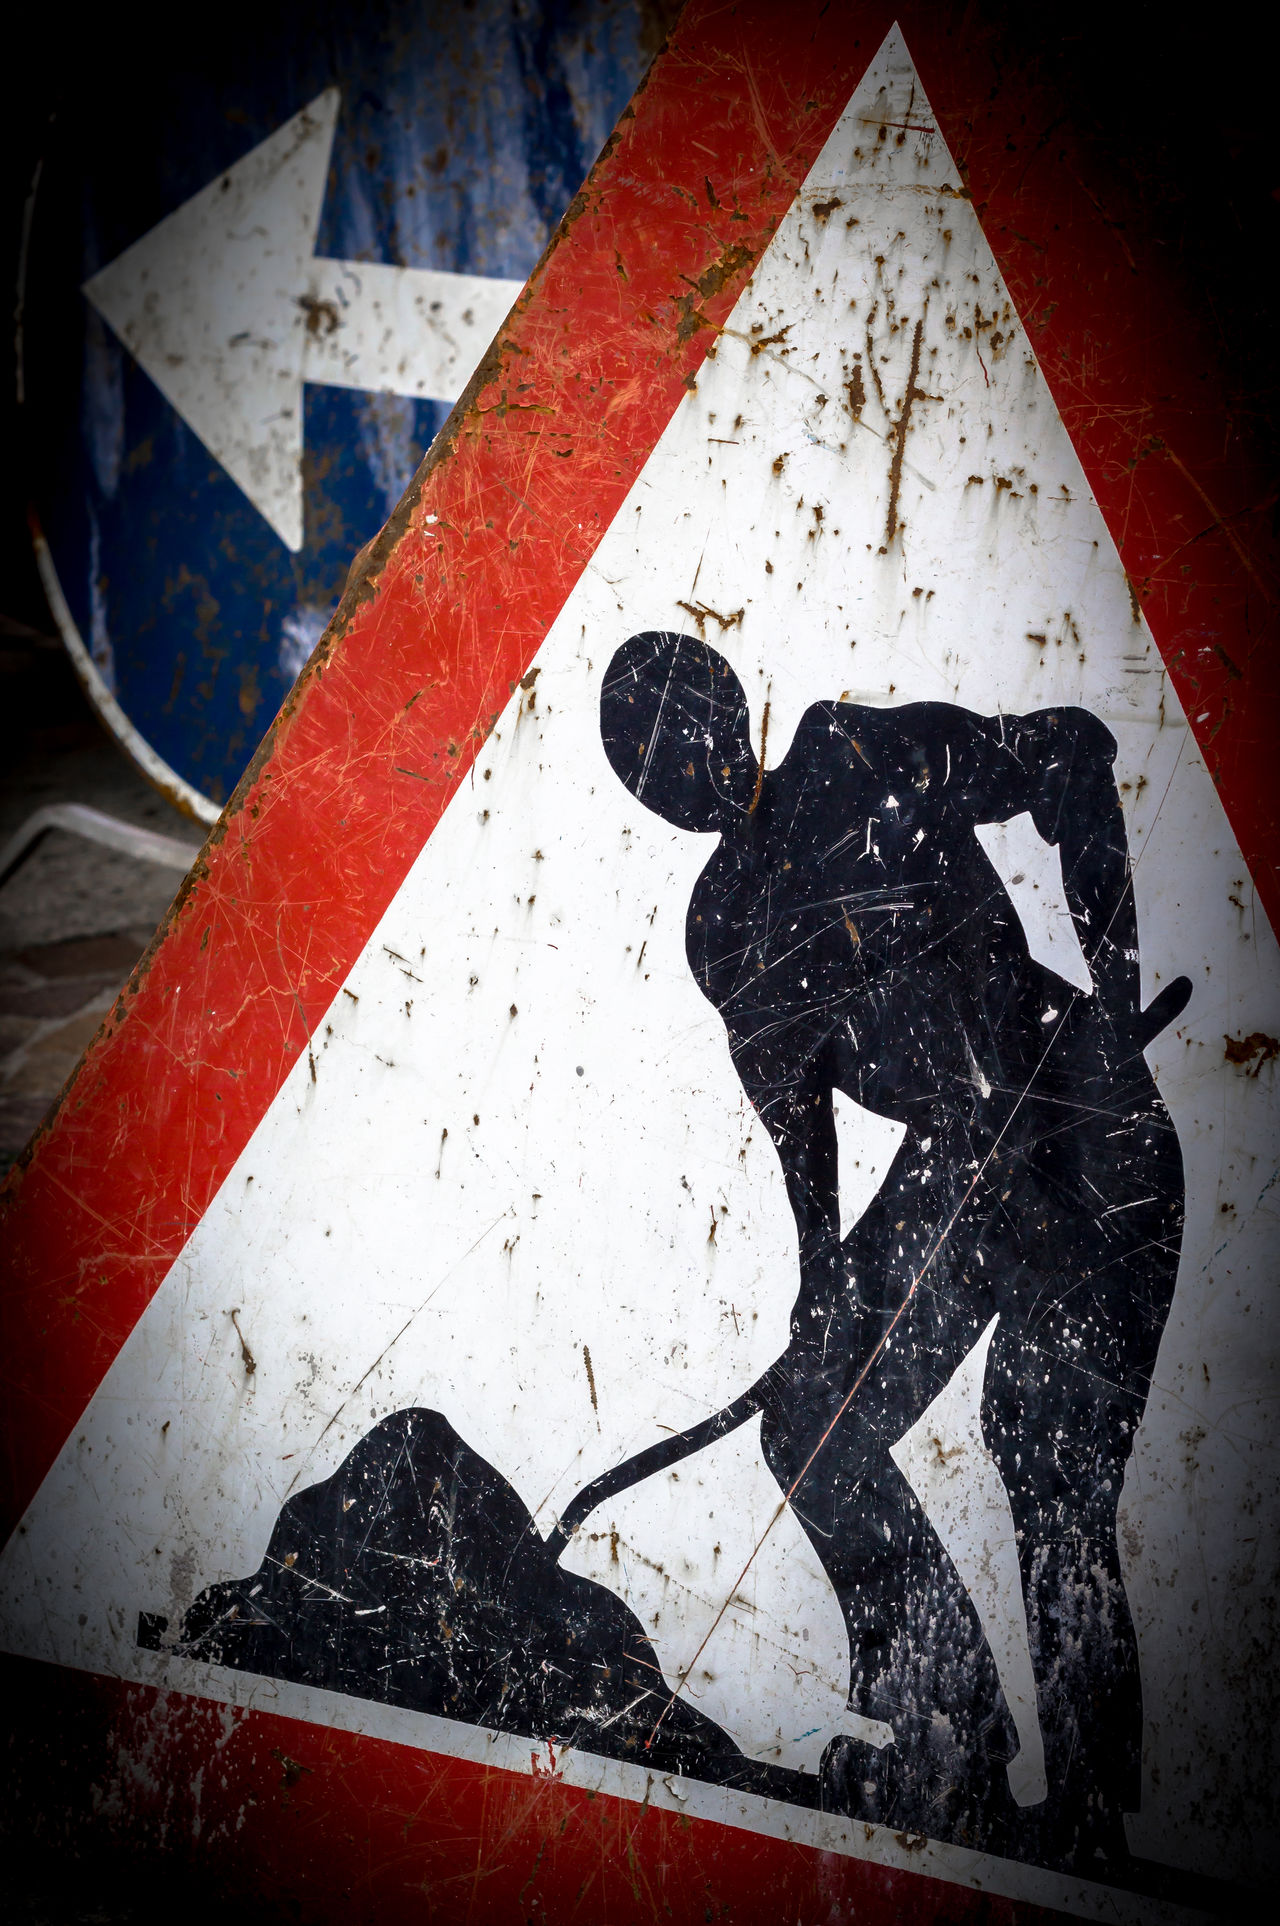 Road works sign at a construction site Alert Area Arrow Attention Caution ⚠️ Construction Site Danger Dipping Grungy Men At Work  Old Progress Red Roadside Roadworks Rusty Safety Scratched Sign Signal Symbol Triangle Warning Worker